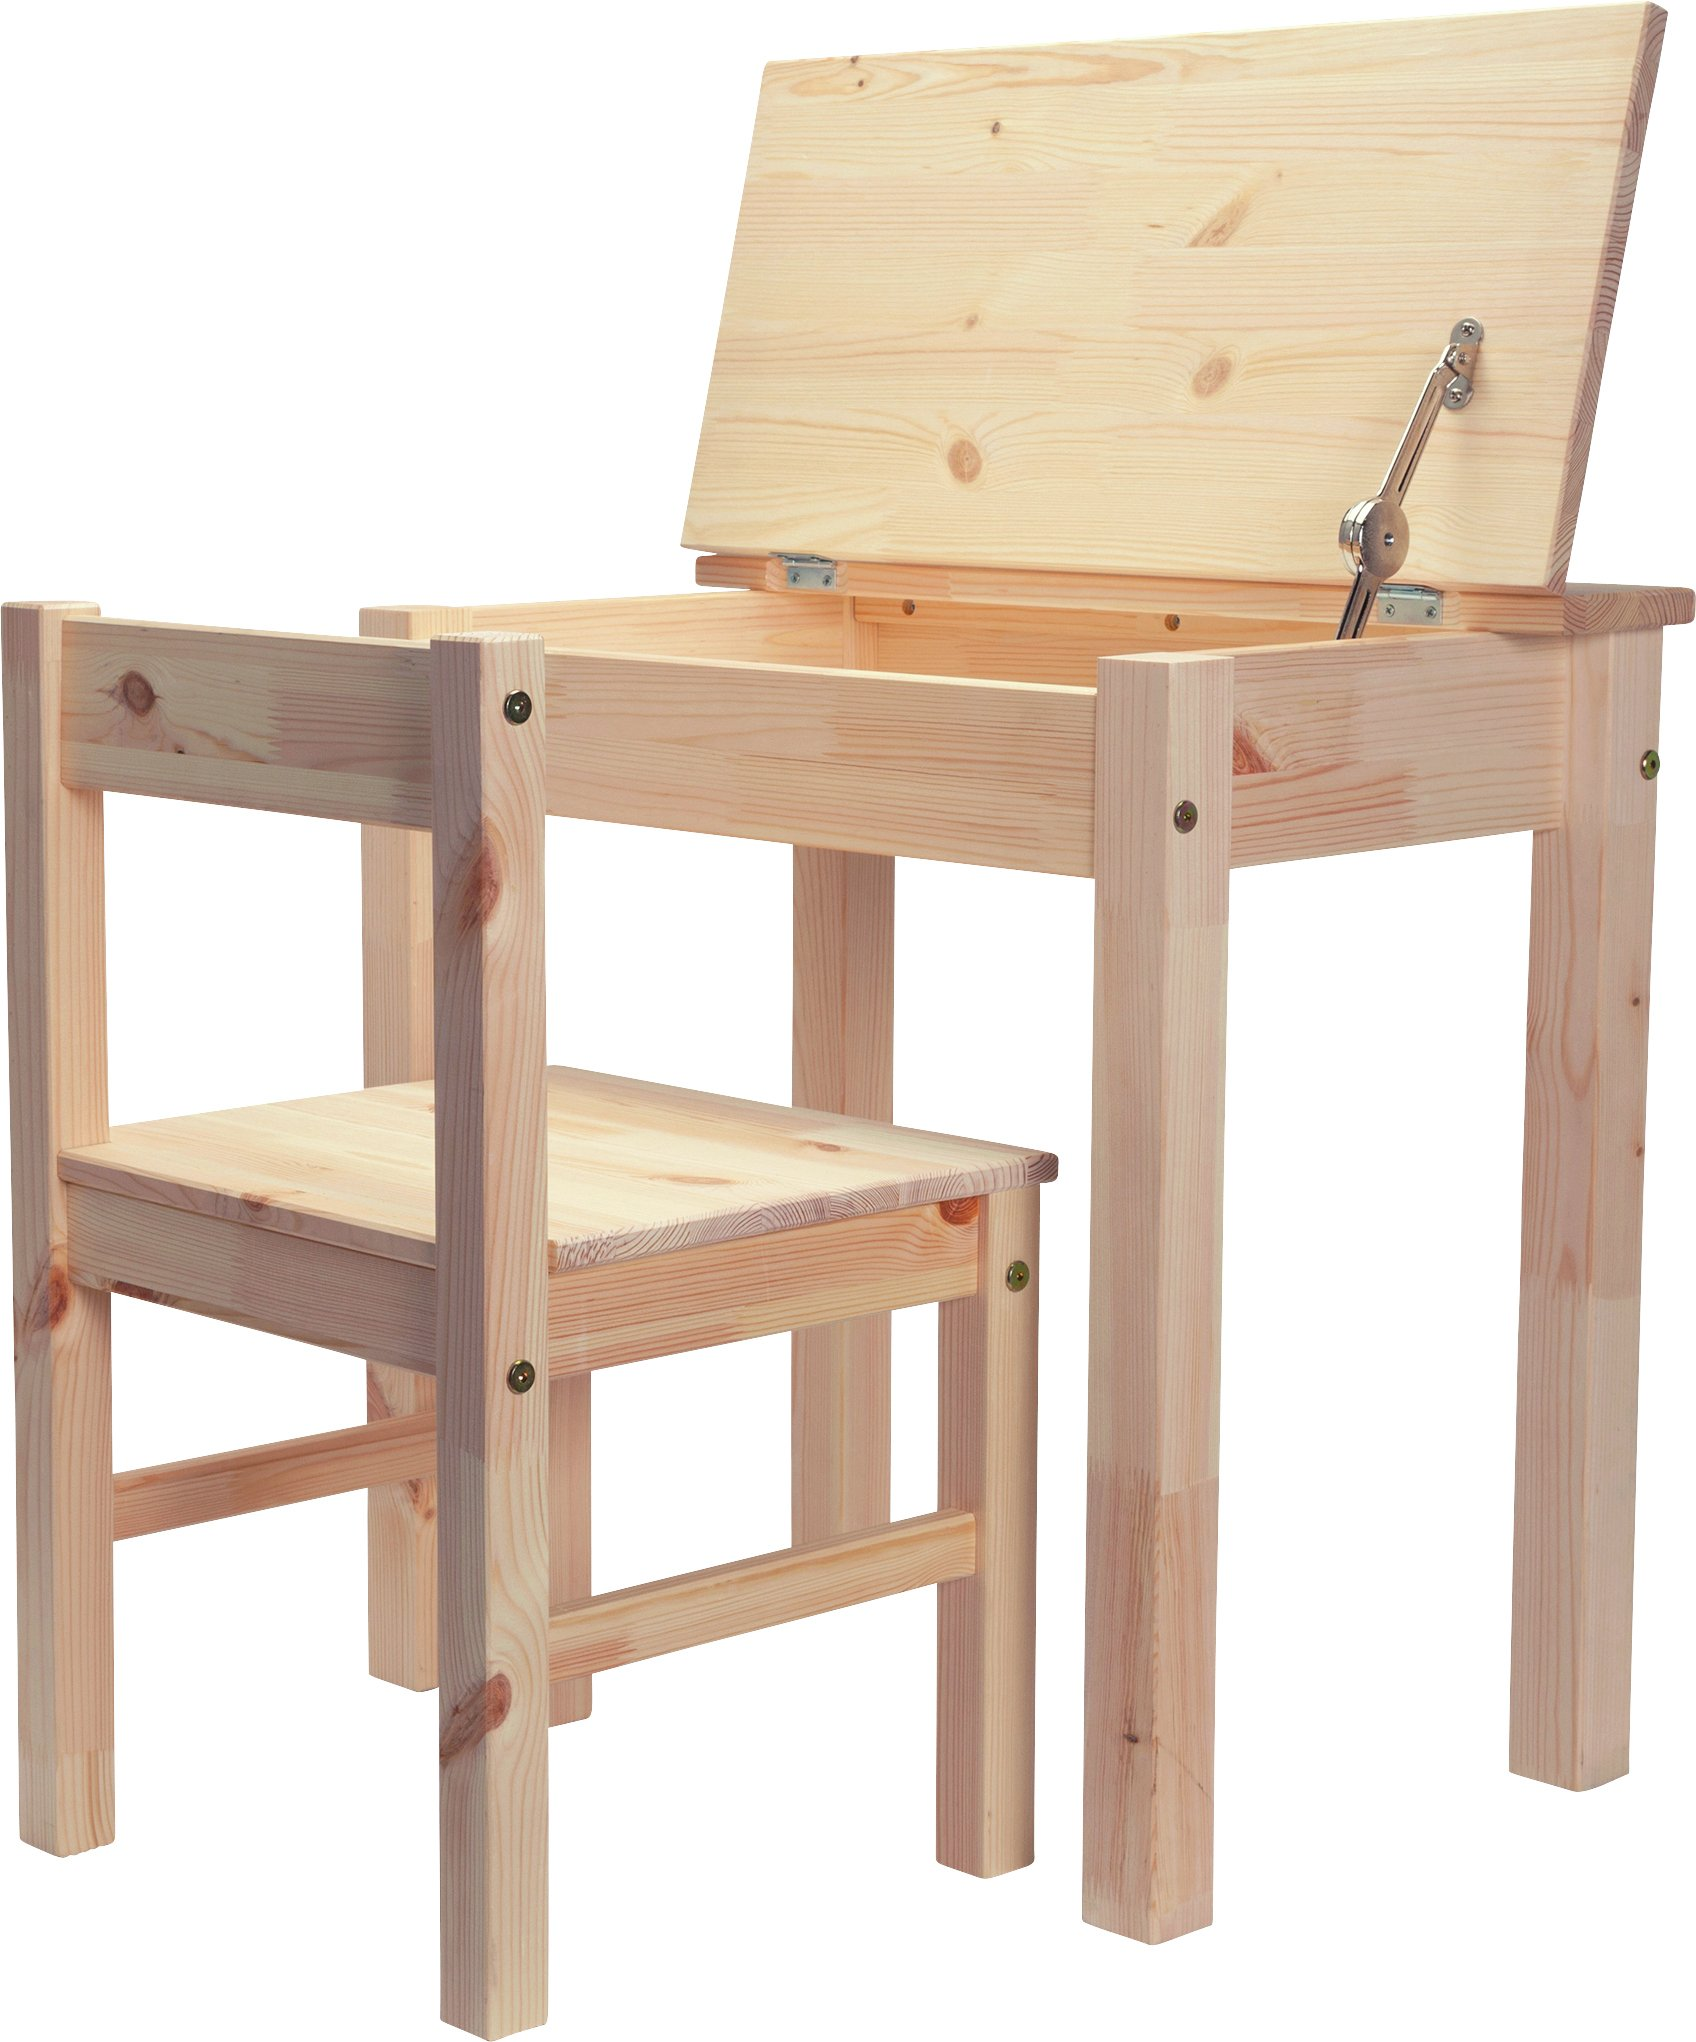 Buy Home Kids Scandinavia Desk And Chair Pine At Argos